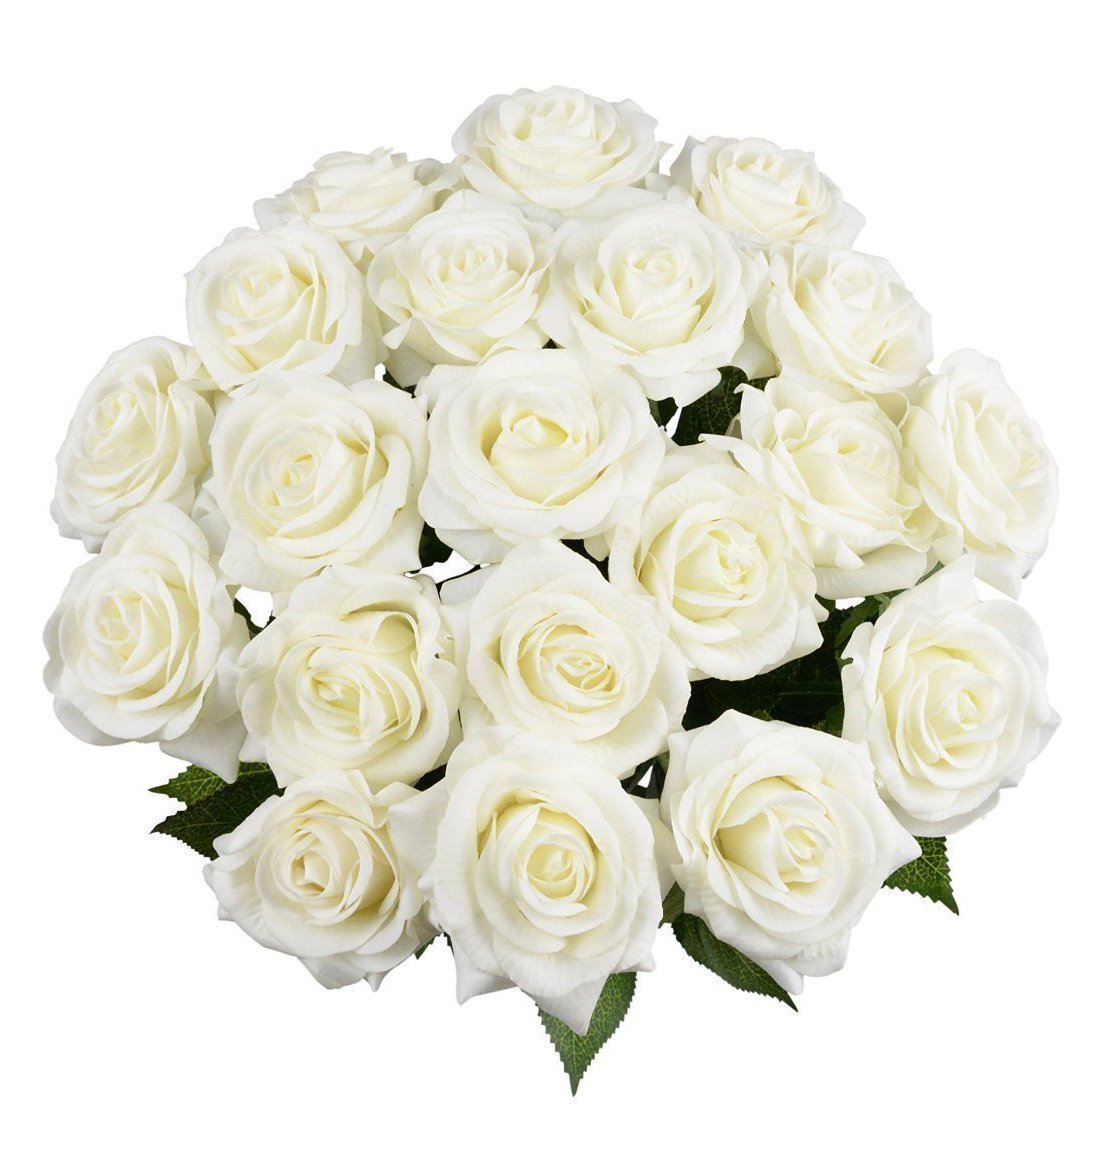 10 Pcs Real Touch Silk Artificial Rose Flowers Silk Gluing PU Fake Flower Home Decorations for Wedding Party or Birthday Garden Bridal Bouquet Flower Saint Valentines Day Gifts Party Event(White)